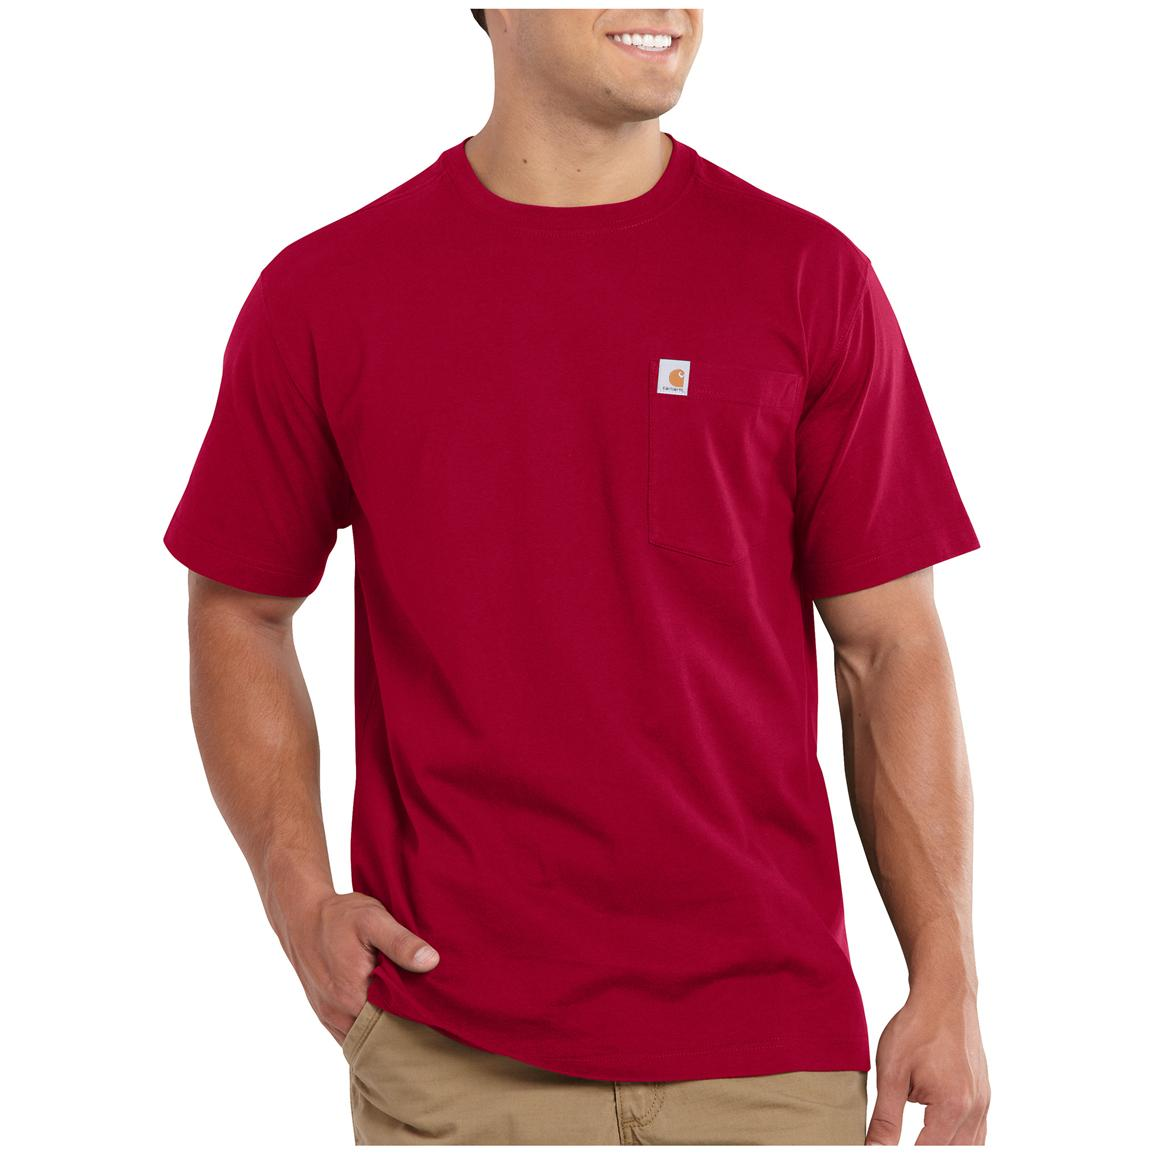 Carhartt Maddock Pocket Short-sleeve T-shirt, Dark Red